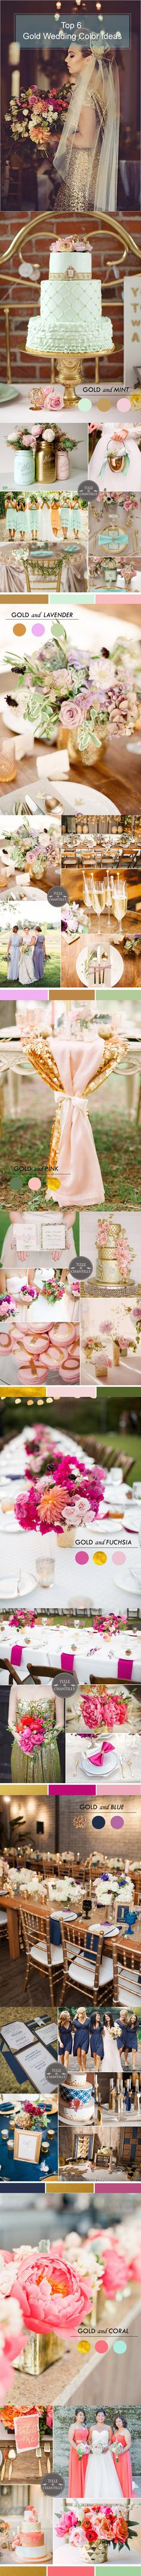 top 6 gold wedding color ideas 2015~